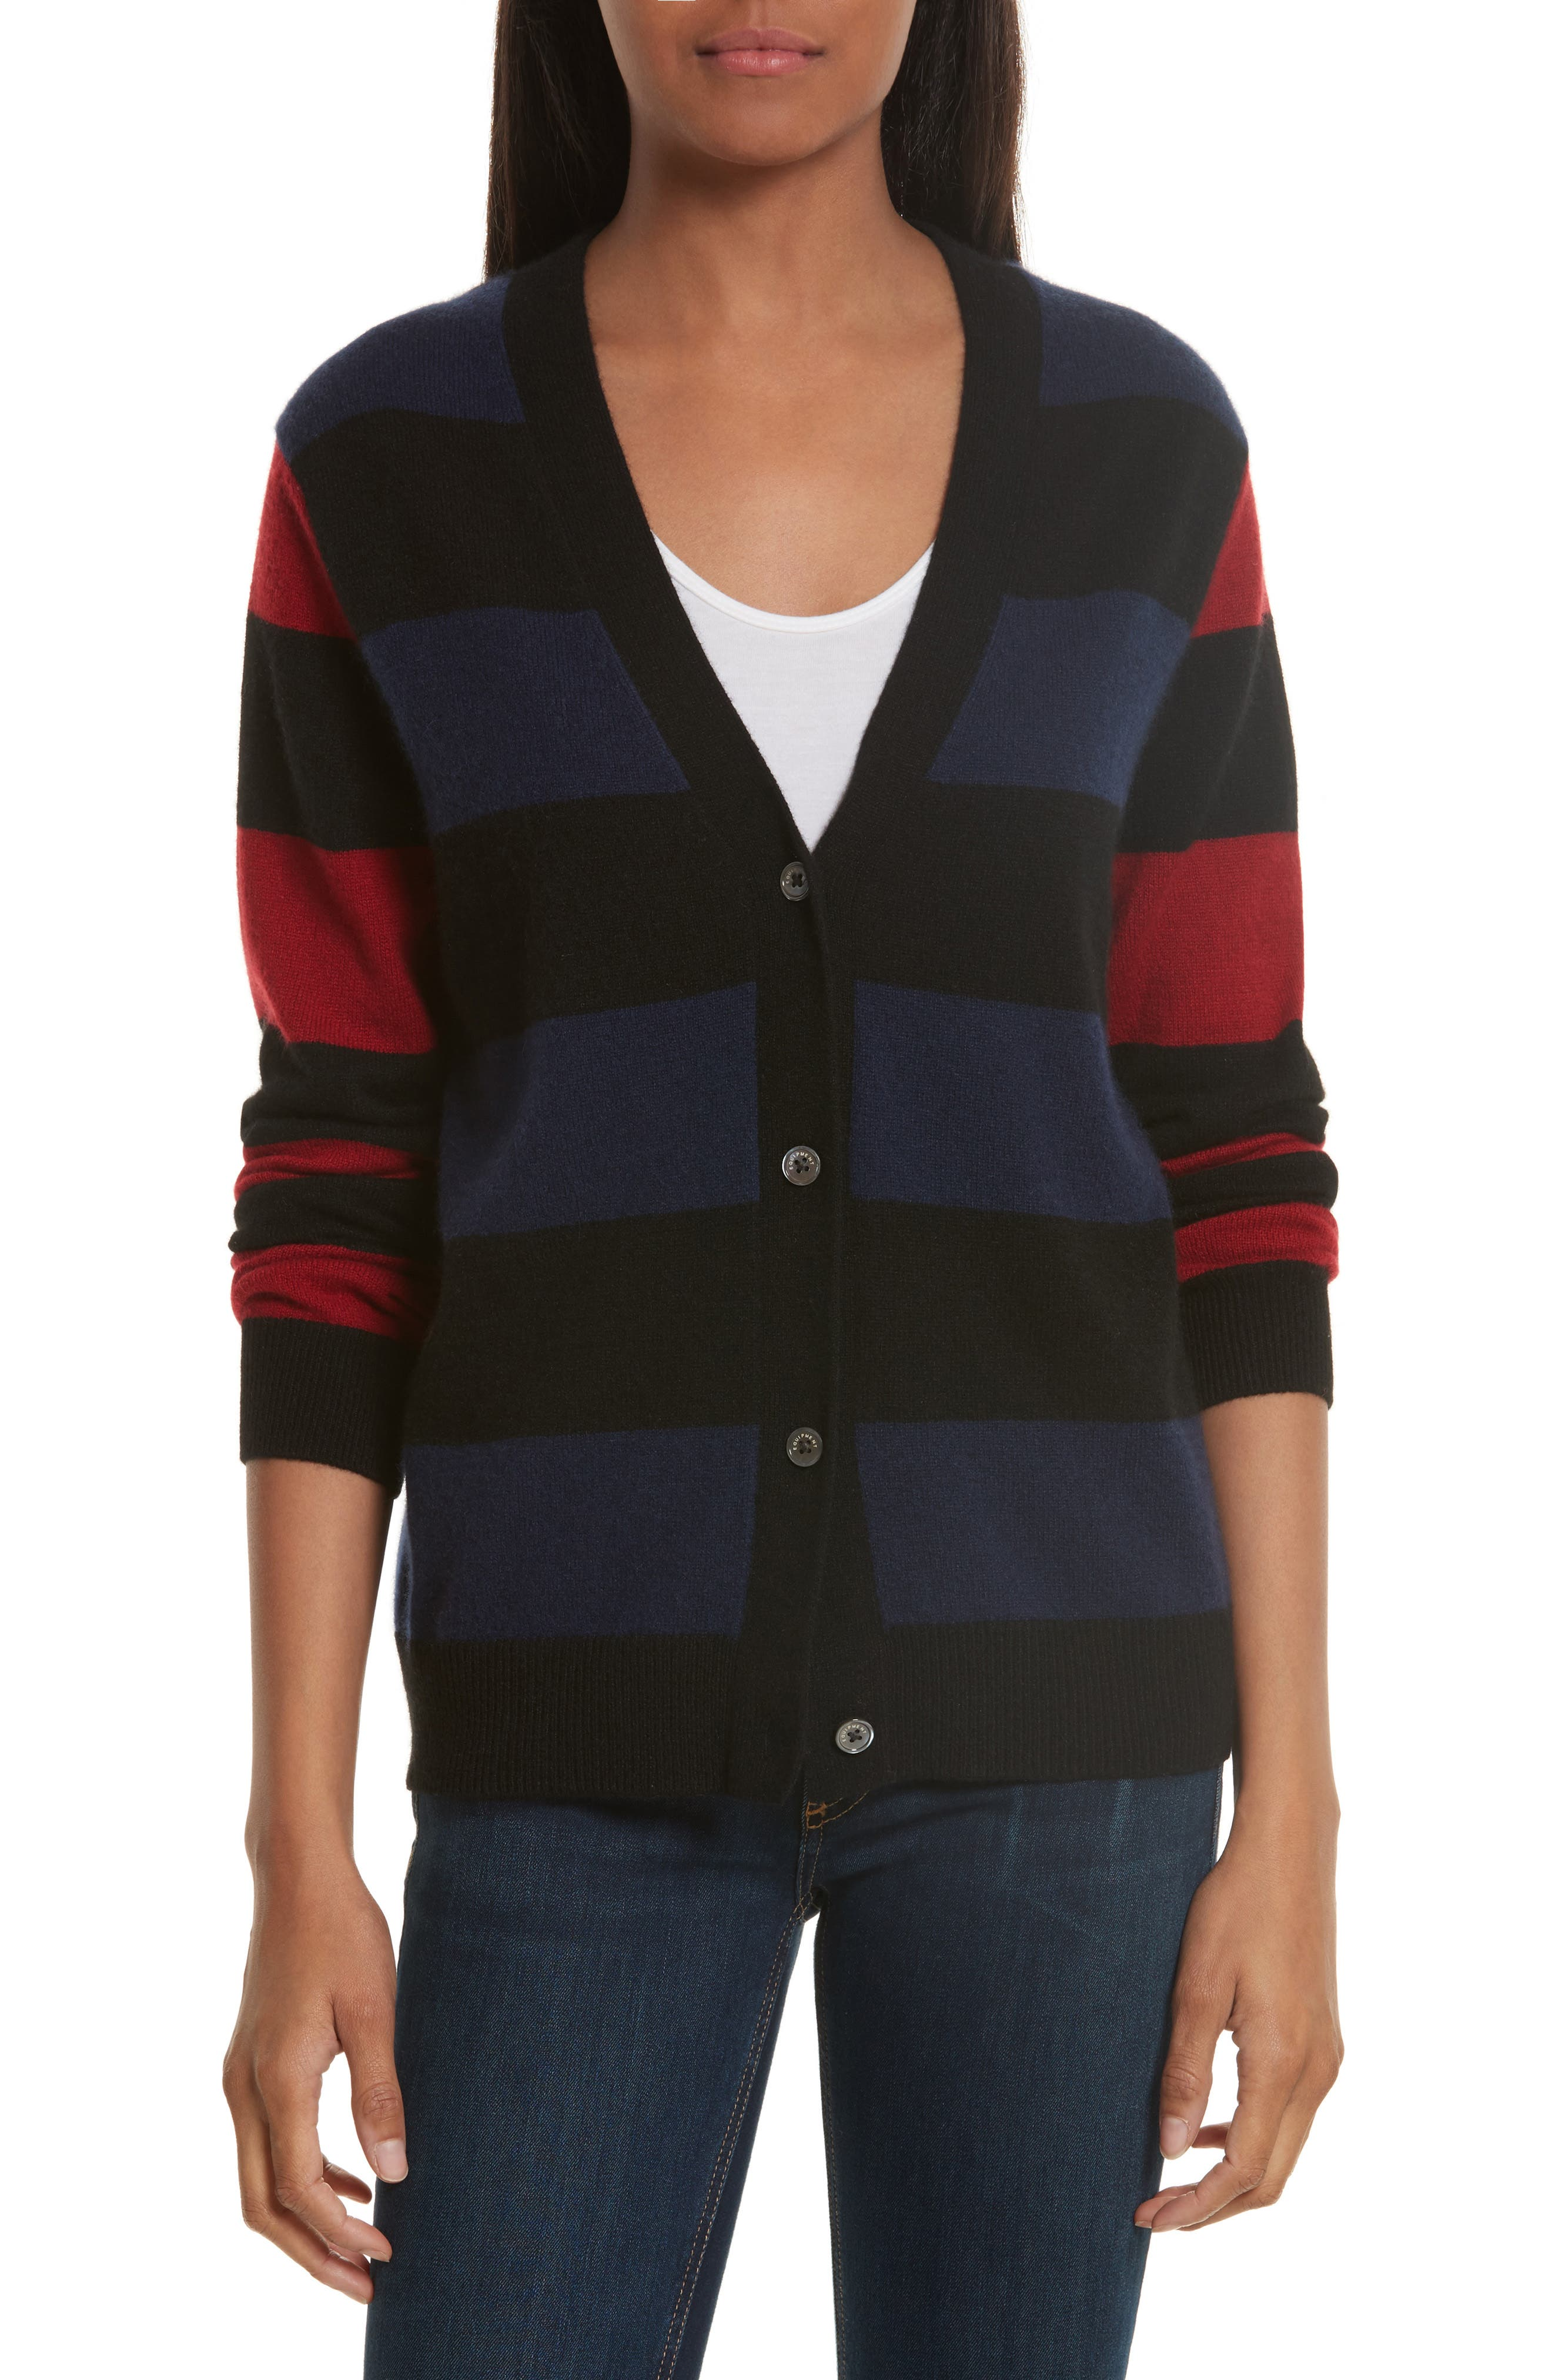 Shelly Stripe Cashmere Cardigan,                         Main,                         color, Peacoat/ Rhubarb/ Black